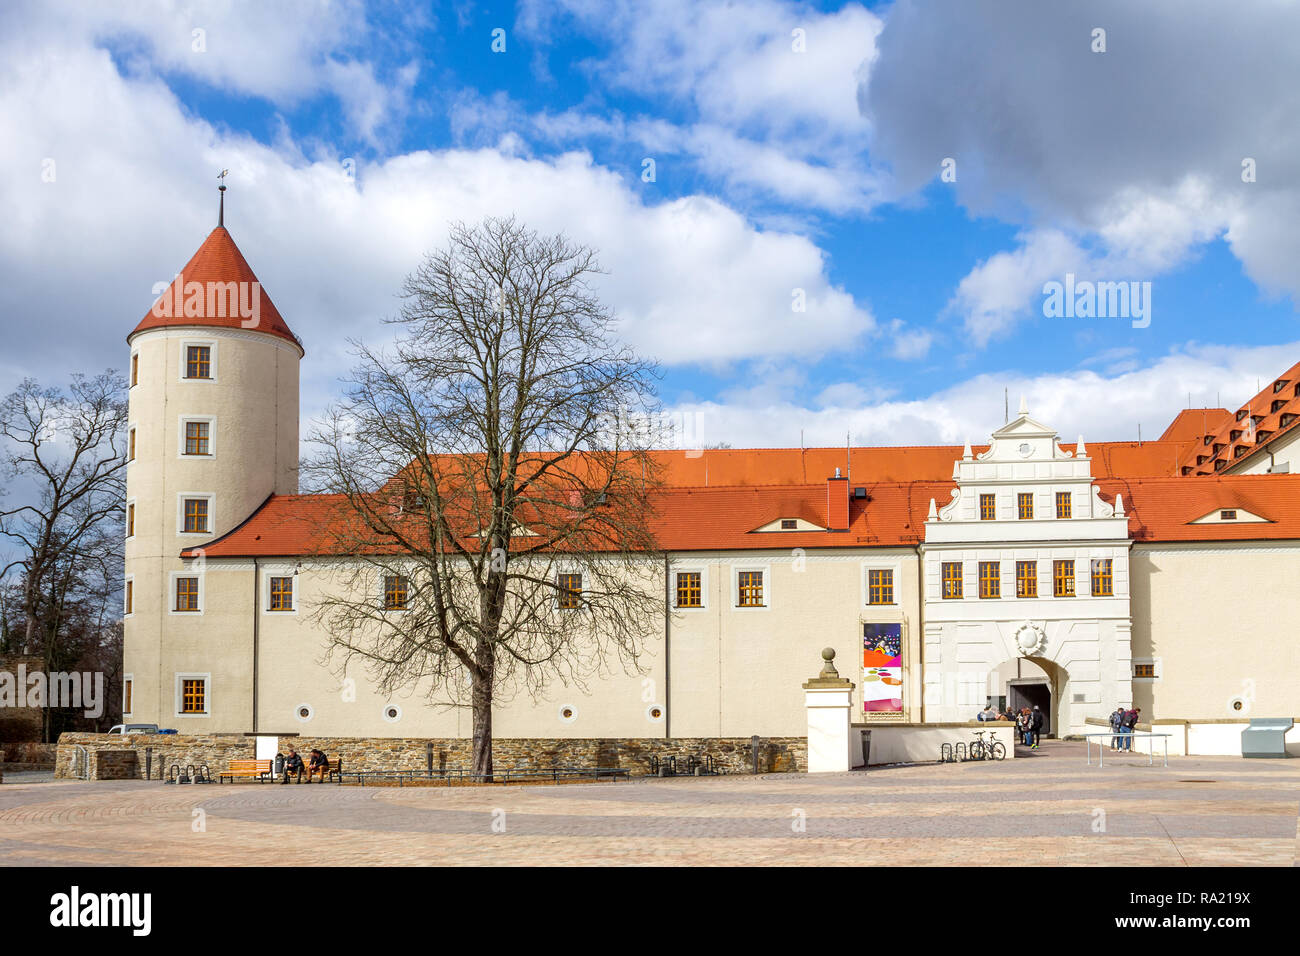 Castle Freudenstein, Freiberg, Germany - Stock Image